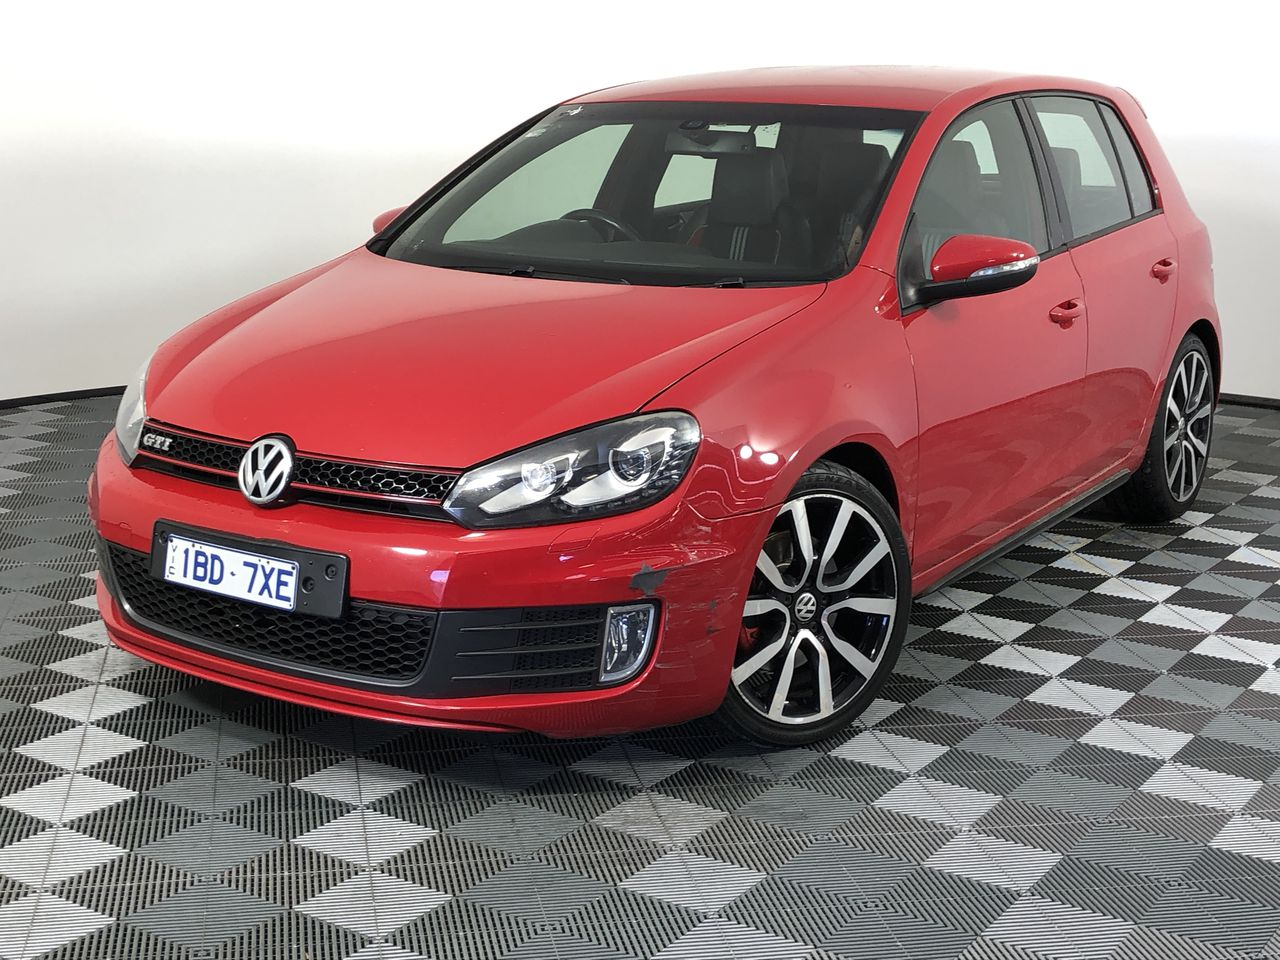 2011 Volkswagen Golf GTI ADIDAS LE A6 Automatic Hatchback